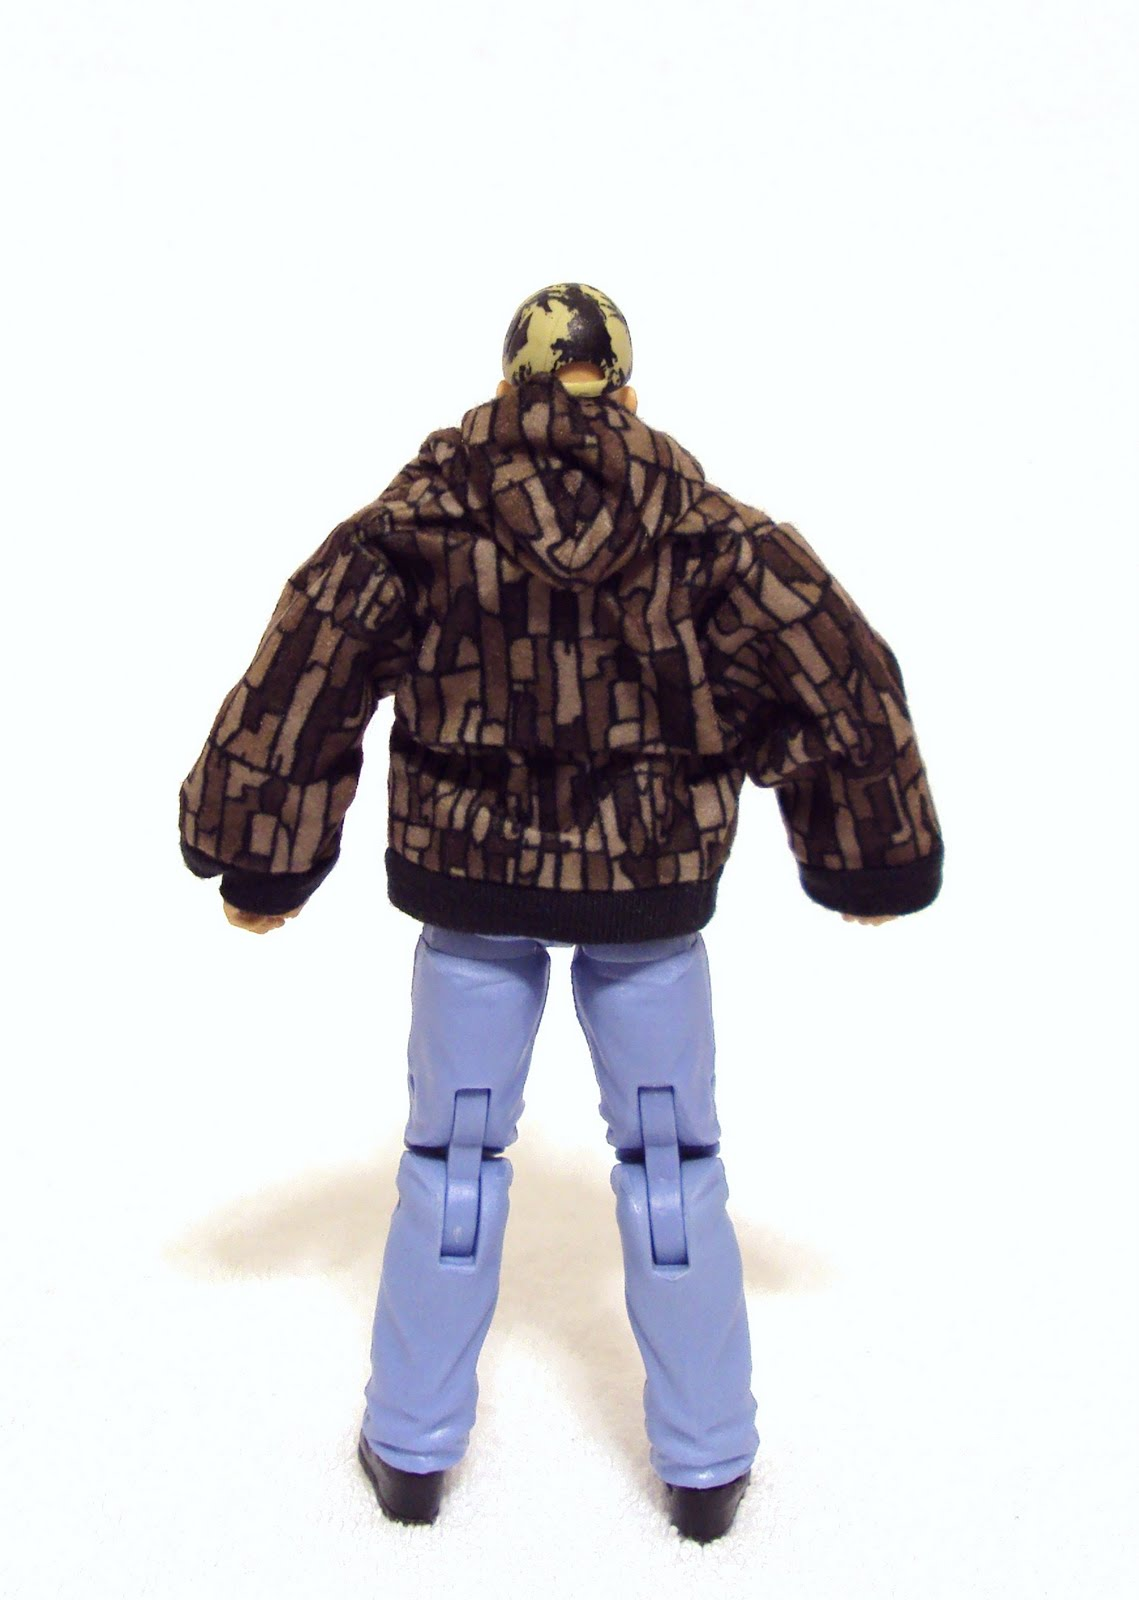 3b S Toy Hive Wwe Defining Moments Stone Cold Steve